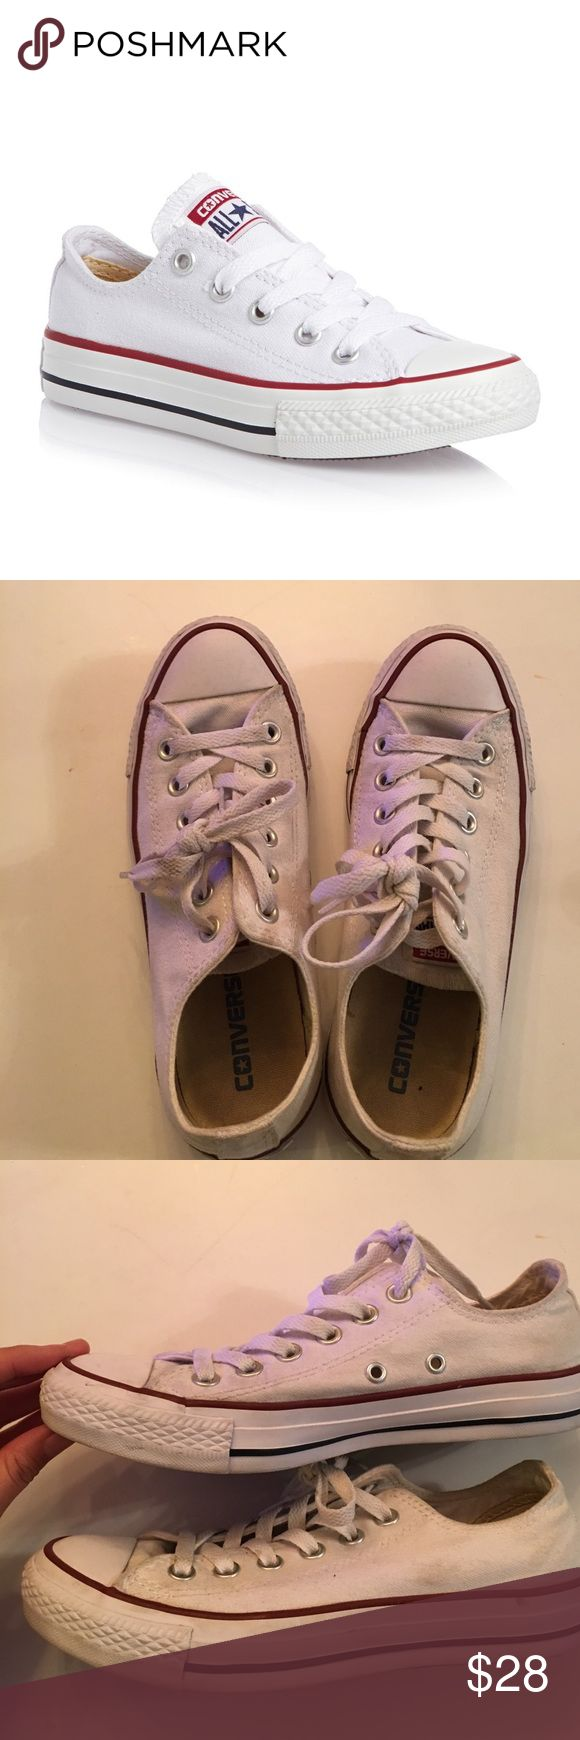 CONVERSE Classic All Stars White Sneakers Shoes Classic white converse in good pre-owned condition. Converse Shoes Sneakers